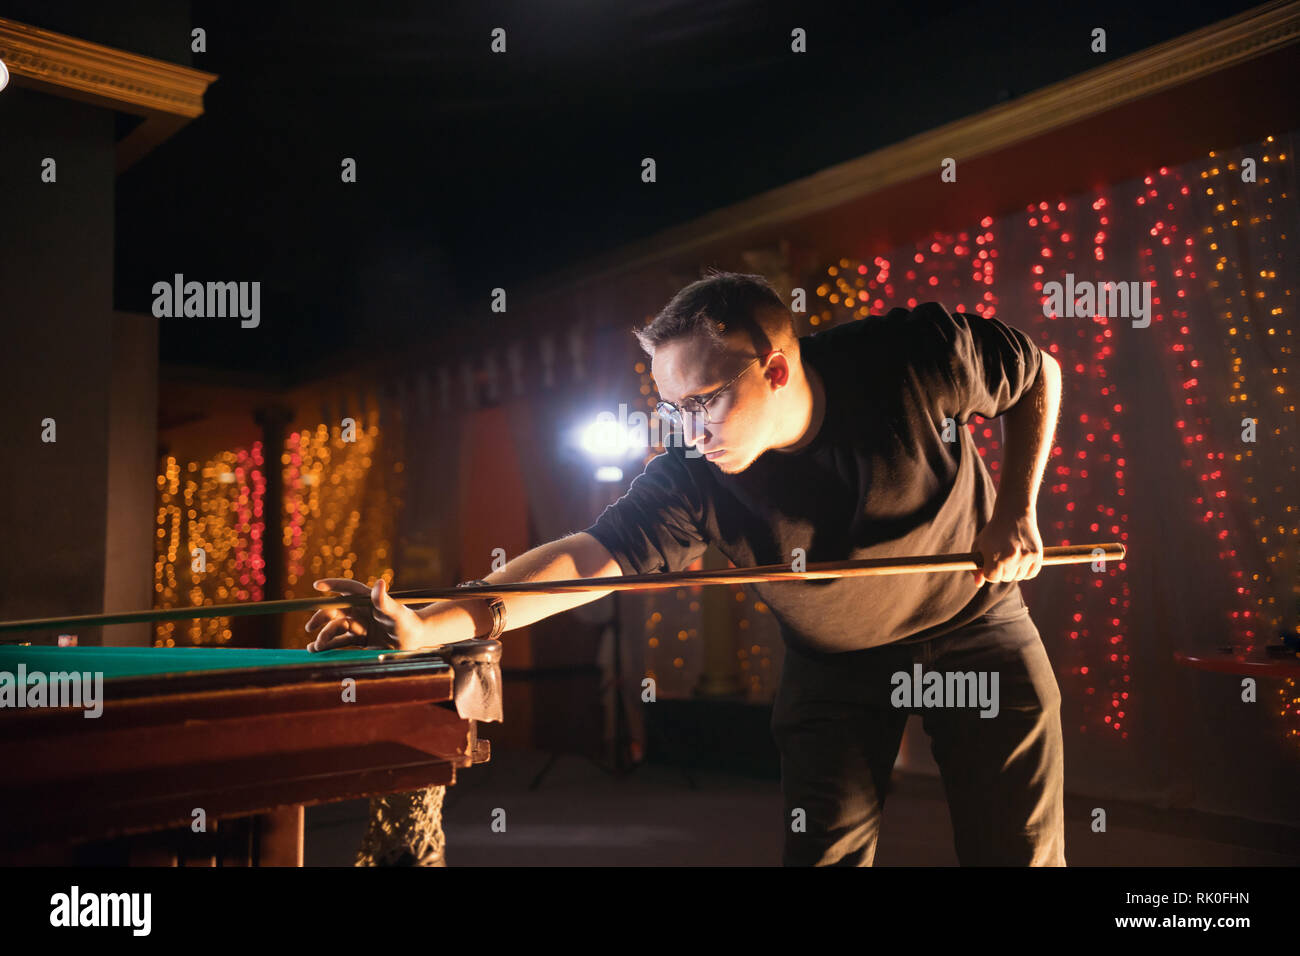 Entertainment concept. Concentrated young man in glasses playing billiard. Side view - Stock Image